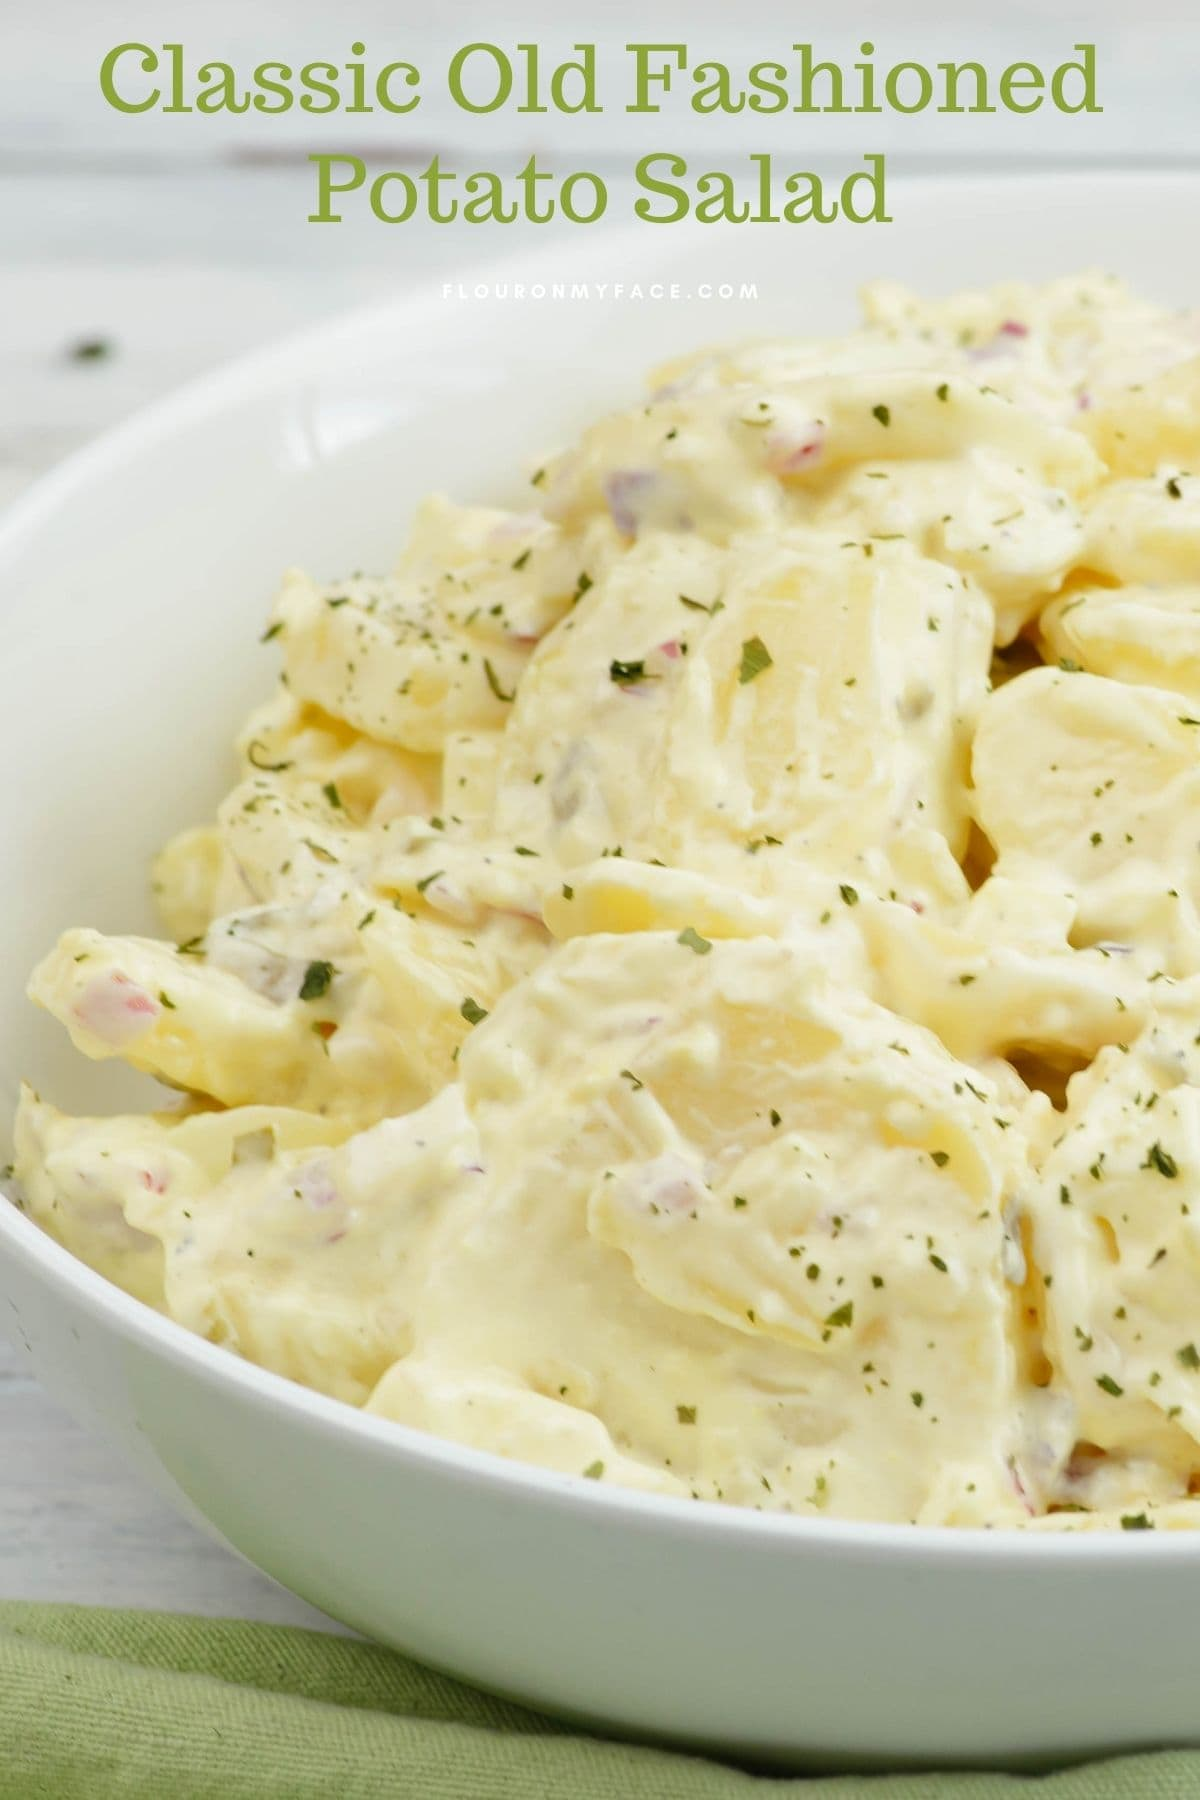 A vertical image of a bowl of old fashioned potato salad.